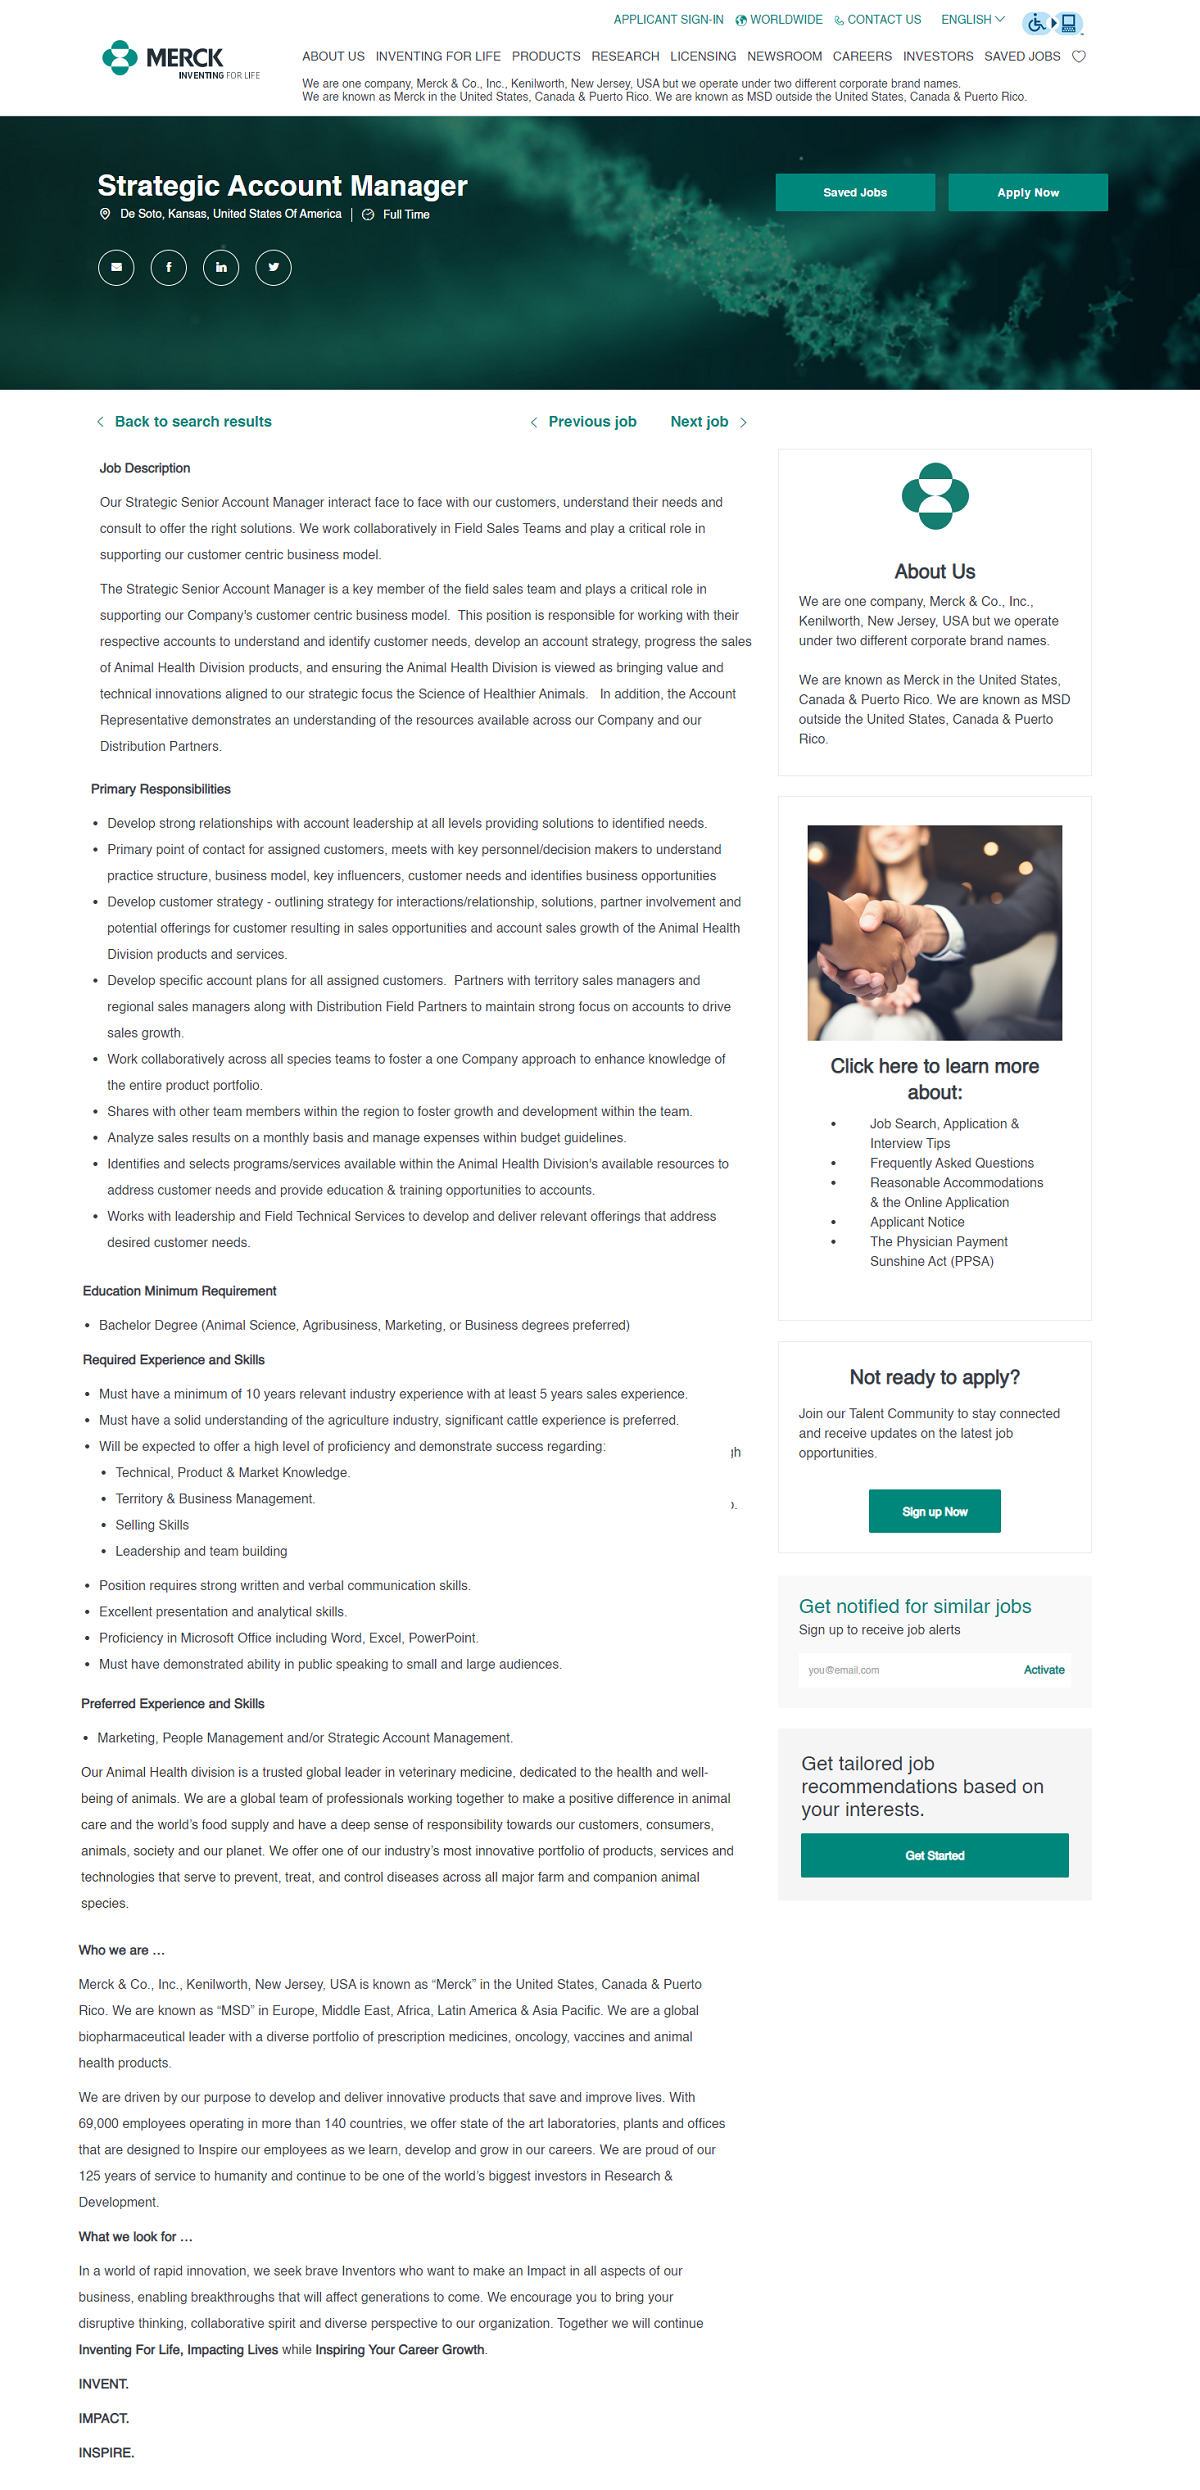 Merck job ad